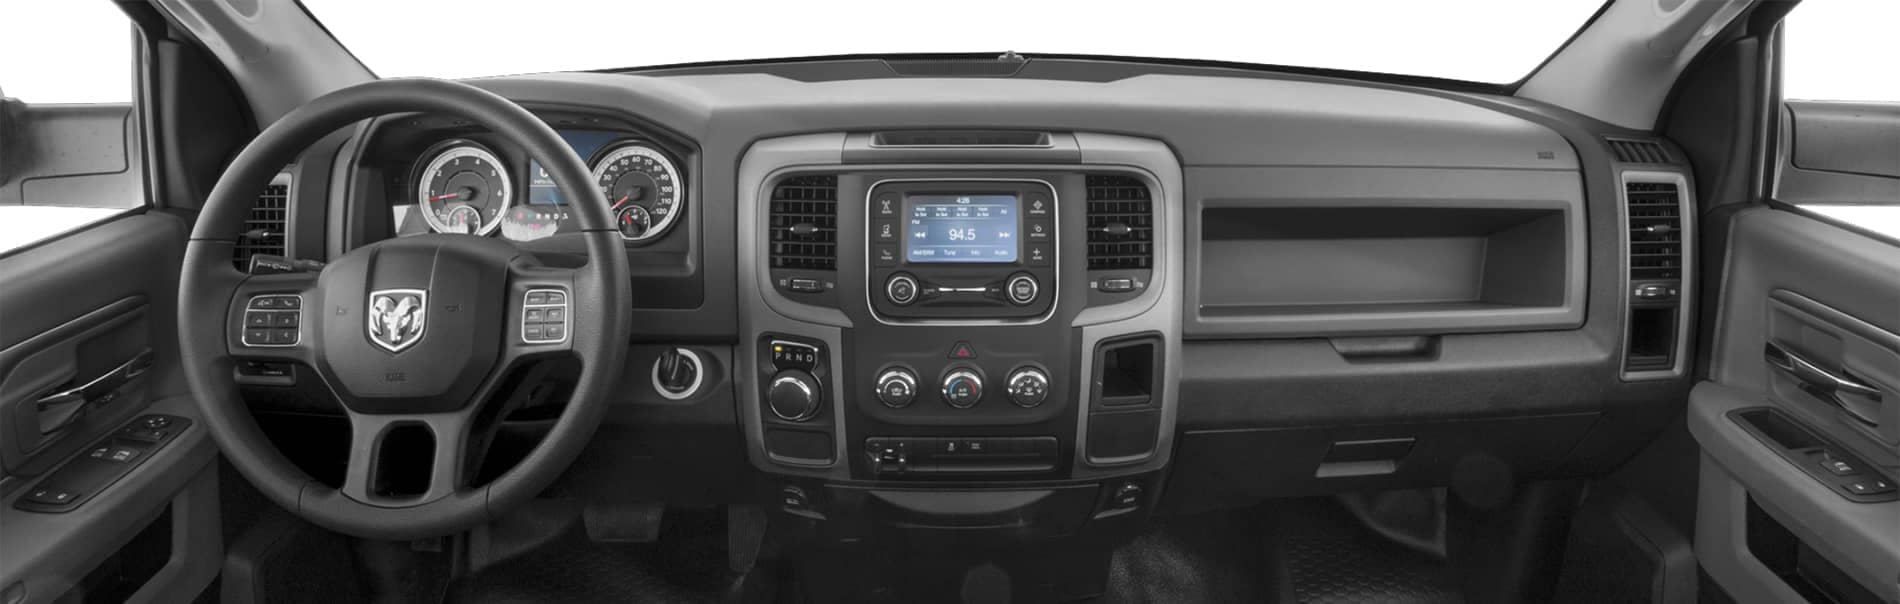 Ram-1500-dashboard-resized